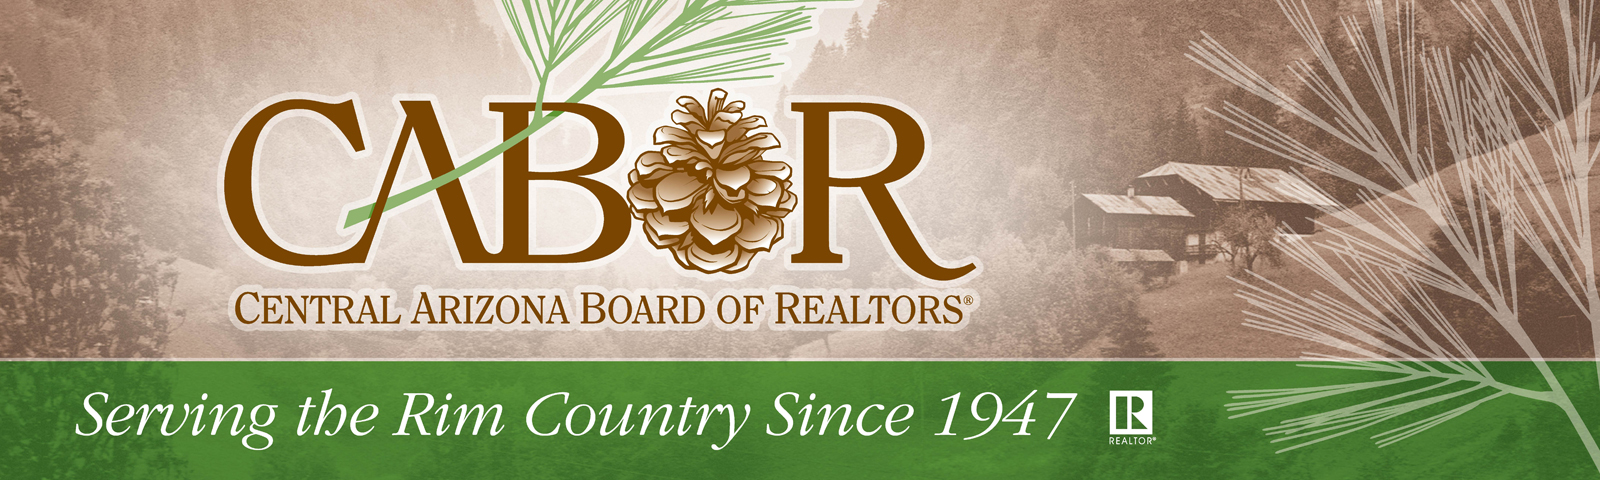 Central Arizona Board of Realtors